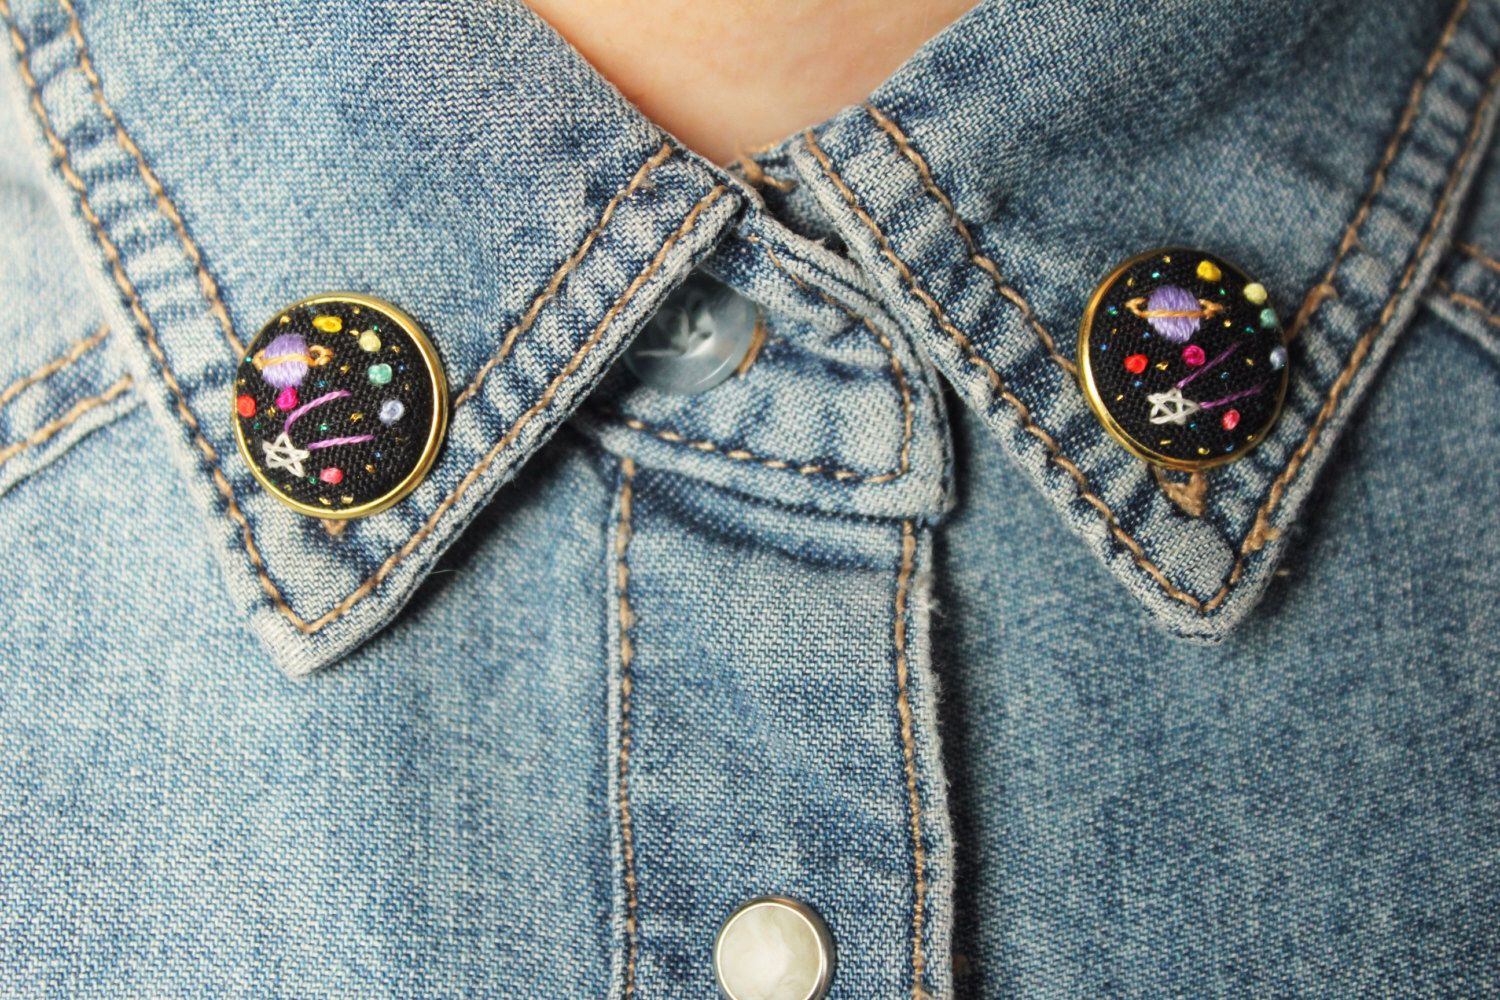 Mini Space Collar Pins // Hand Embroidery by İrem Yazıcı by BaobapHandmade on Etsy https://www.etsy.com/uk/listing/264129057/mini-space-collar-pins-hand-embroidery